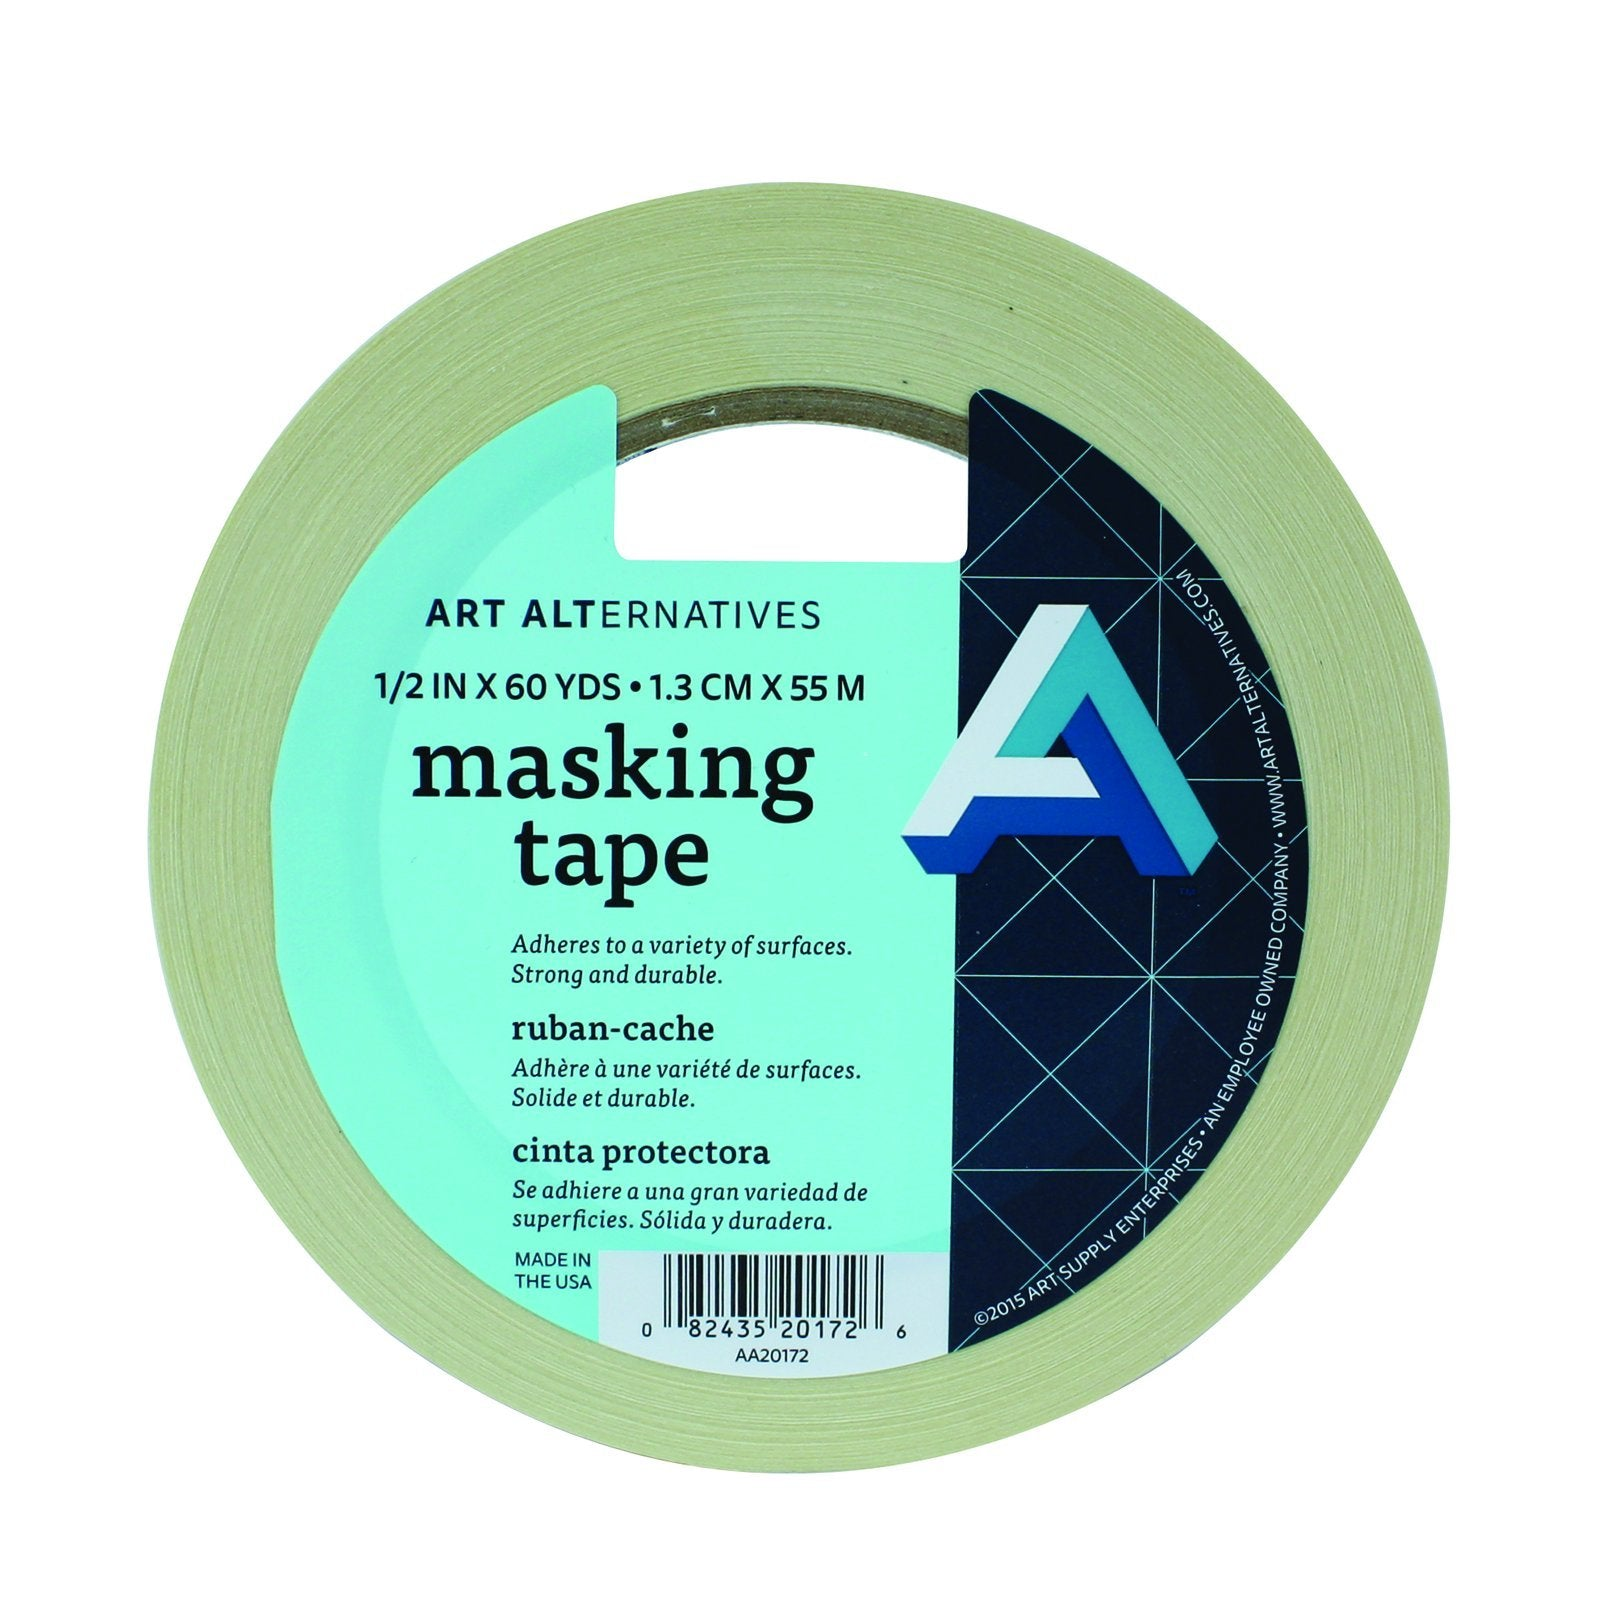 "Art Alternatives Masking Tape 1/2"" x 60 yds."